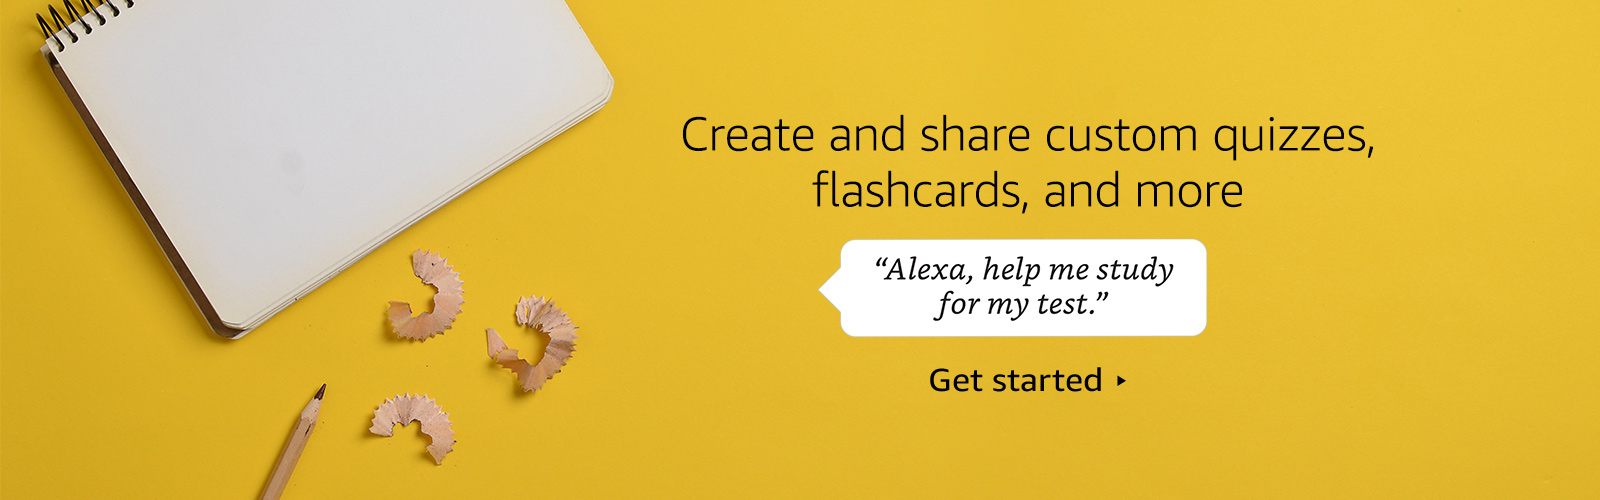 "Create and share custom quizzes, flashcards, and more. ""Alexa, help me study for my test."""